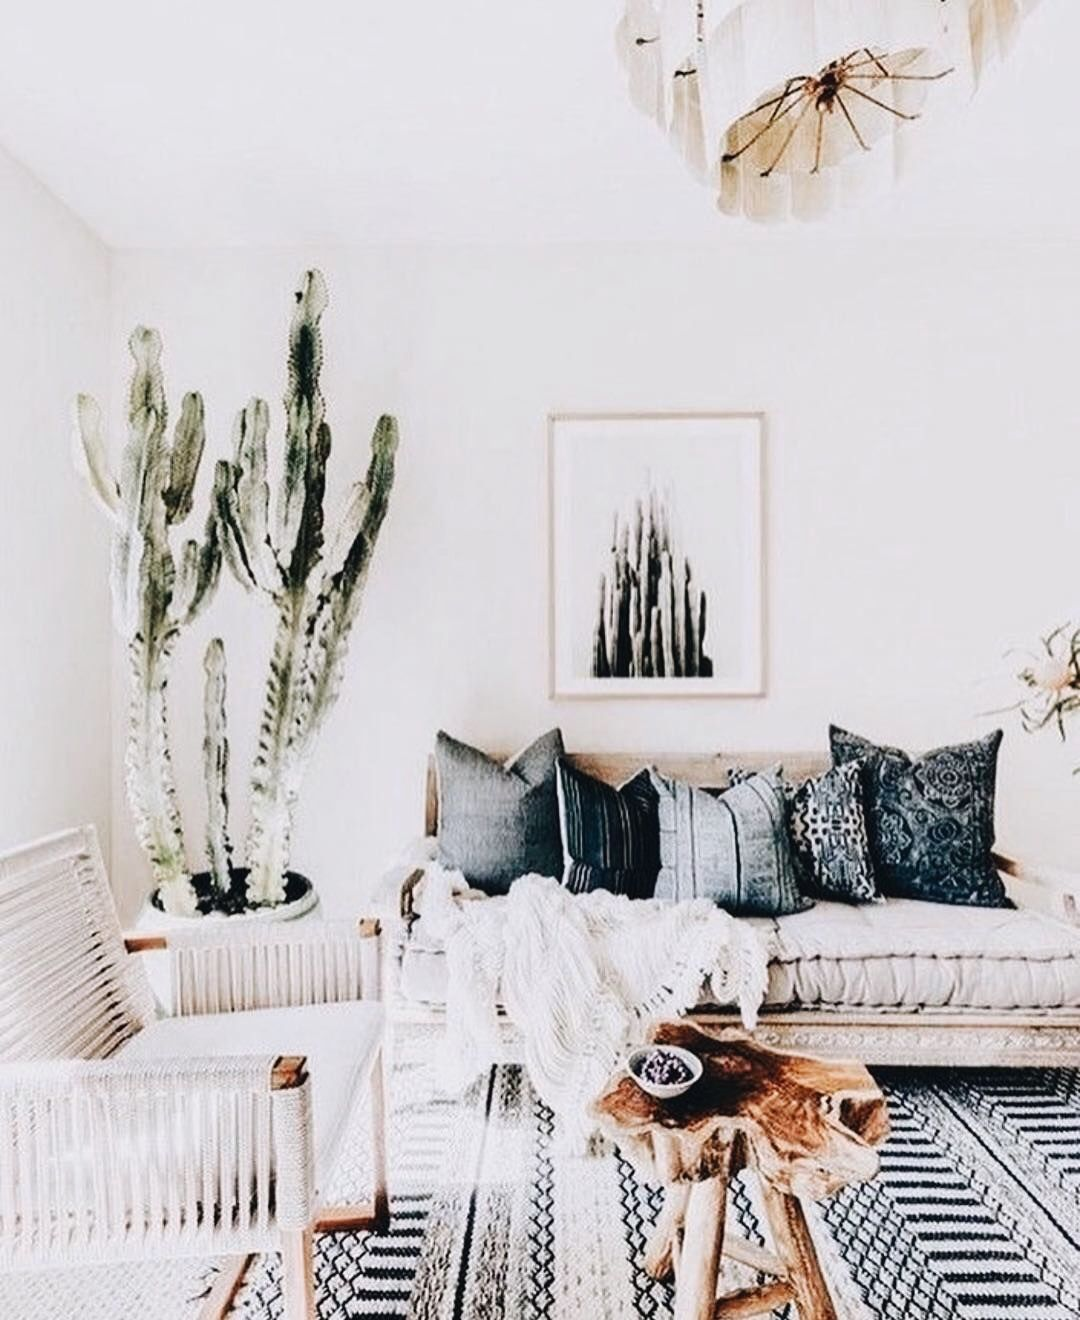 Pin By Bri Majikes On Decor Modern Bohemian Living Room Bohemian Chic Living Room Boho Chic Living Room